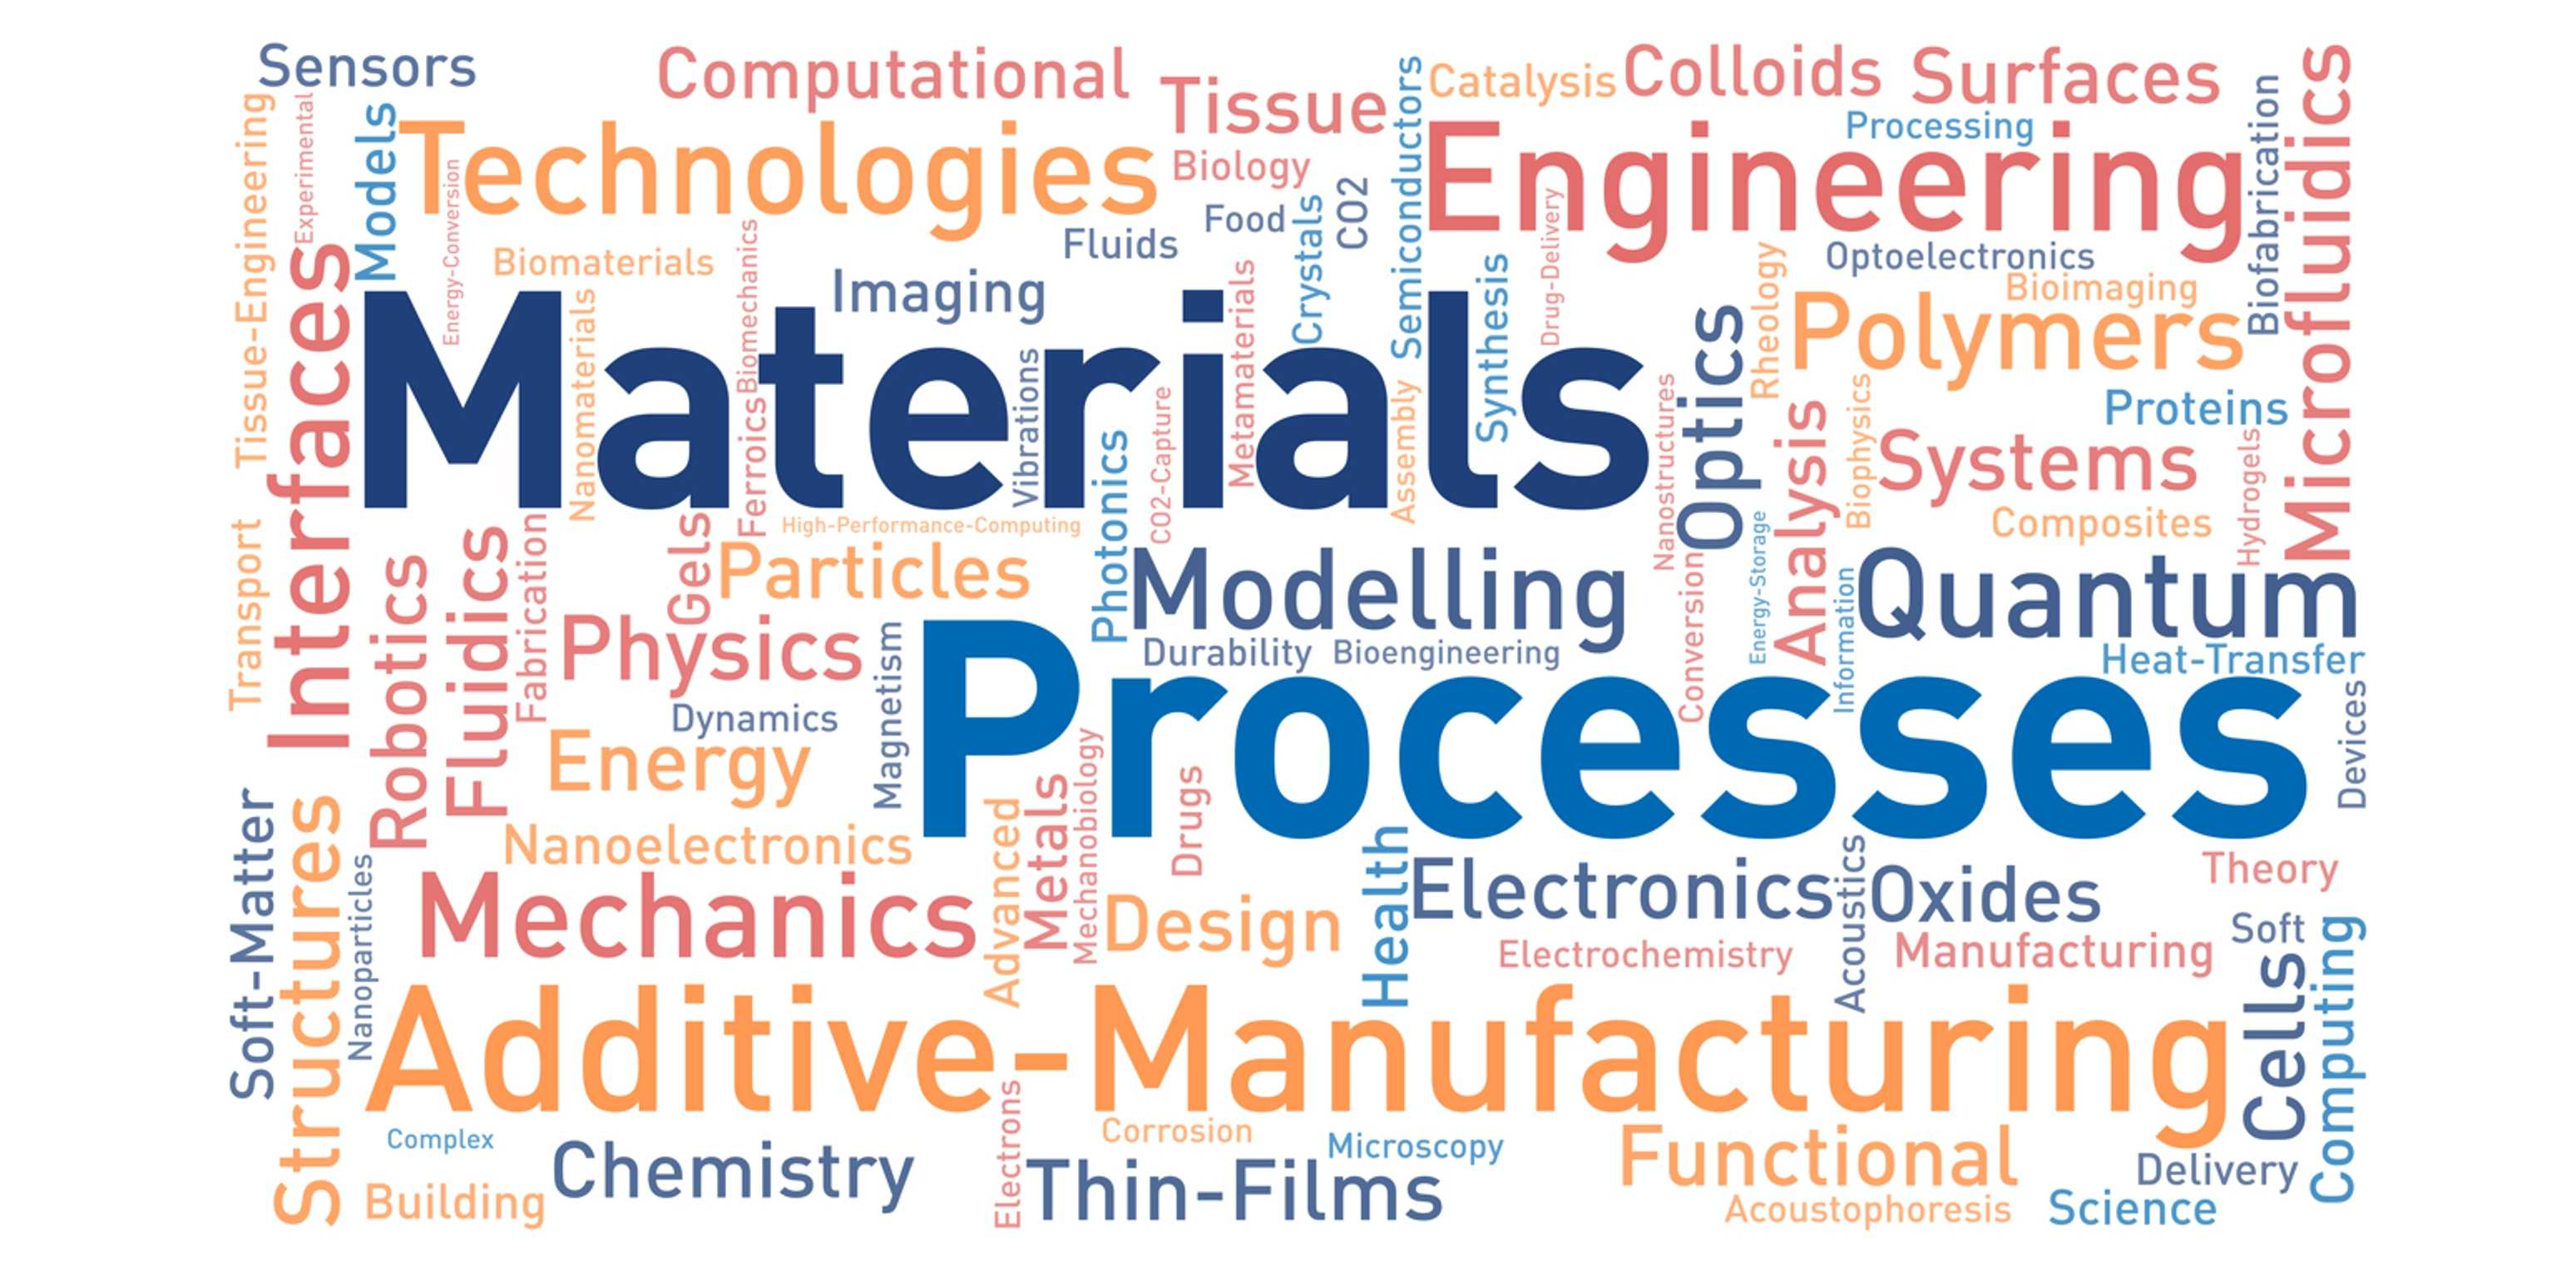 MaP Award – Competence Center for Materials and Processes (MaP